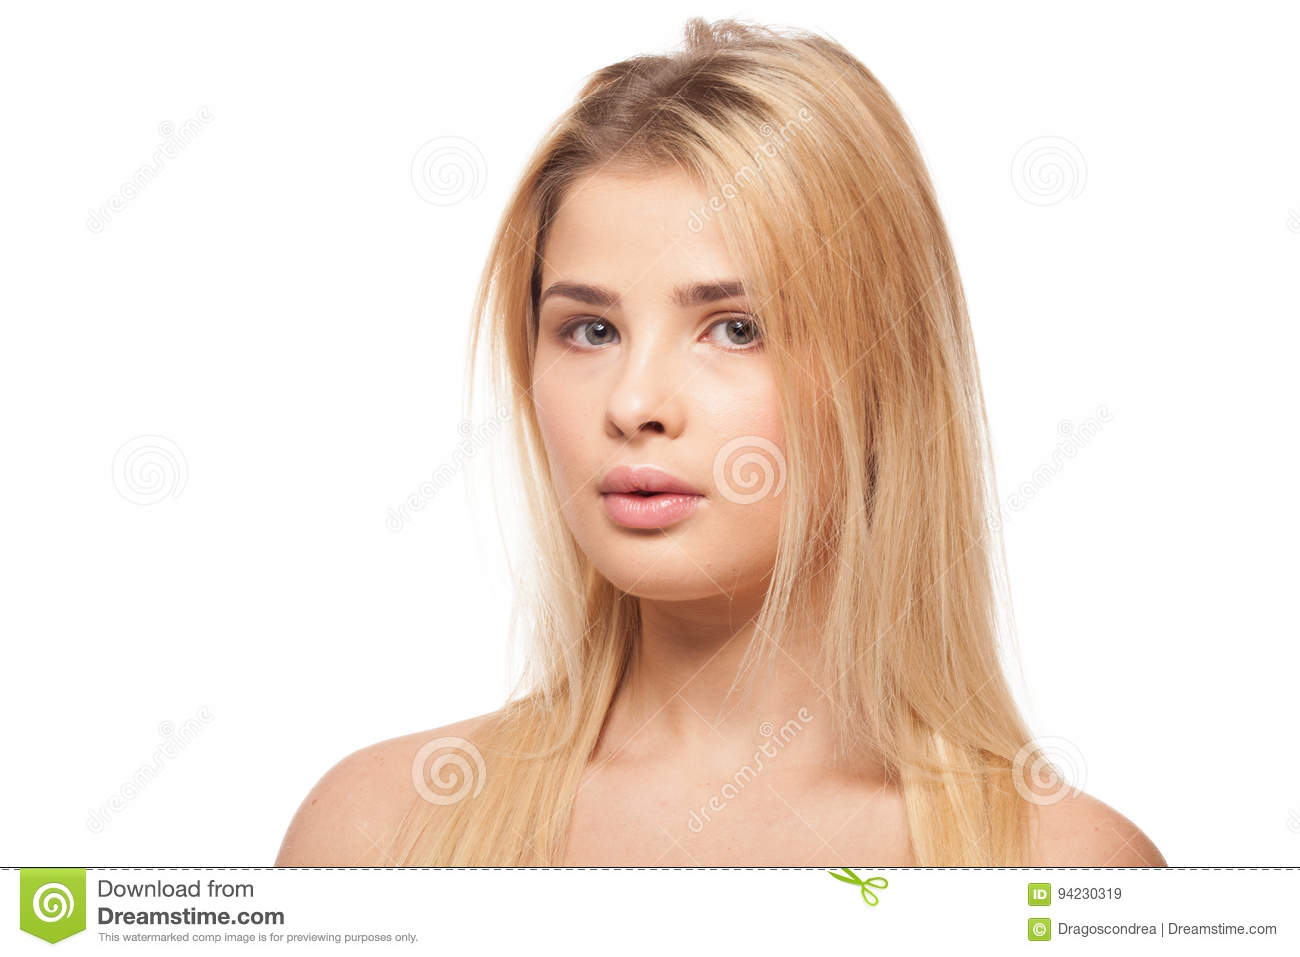 Overweight girl on white background